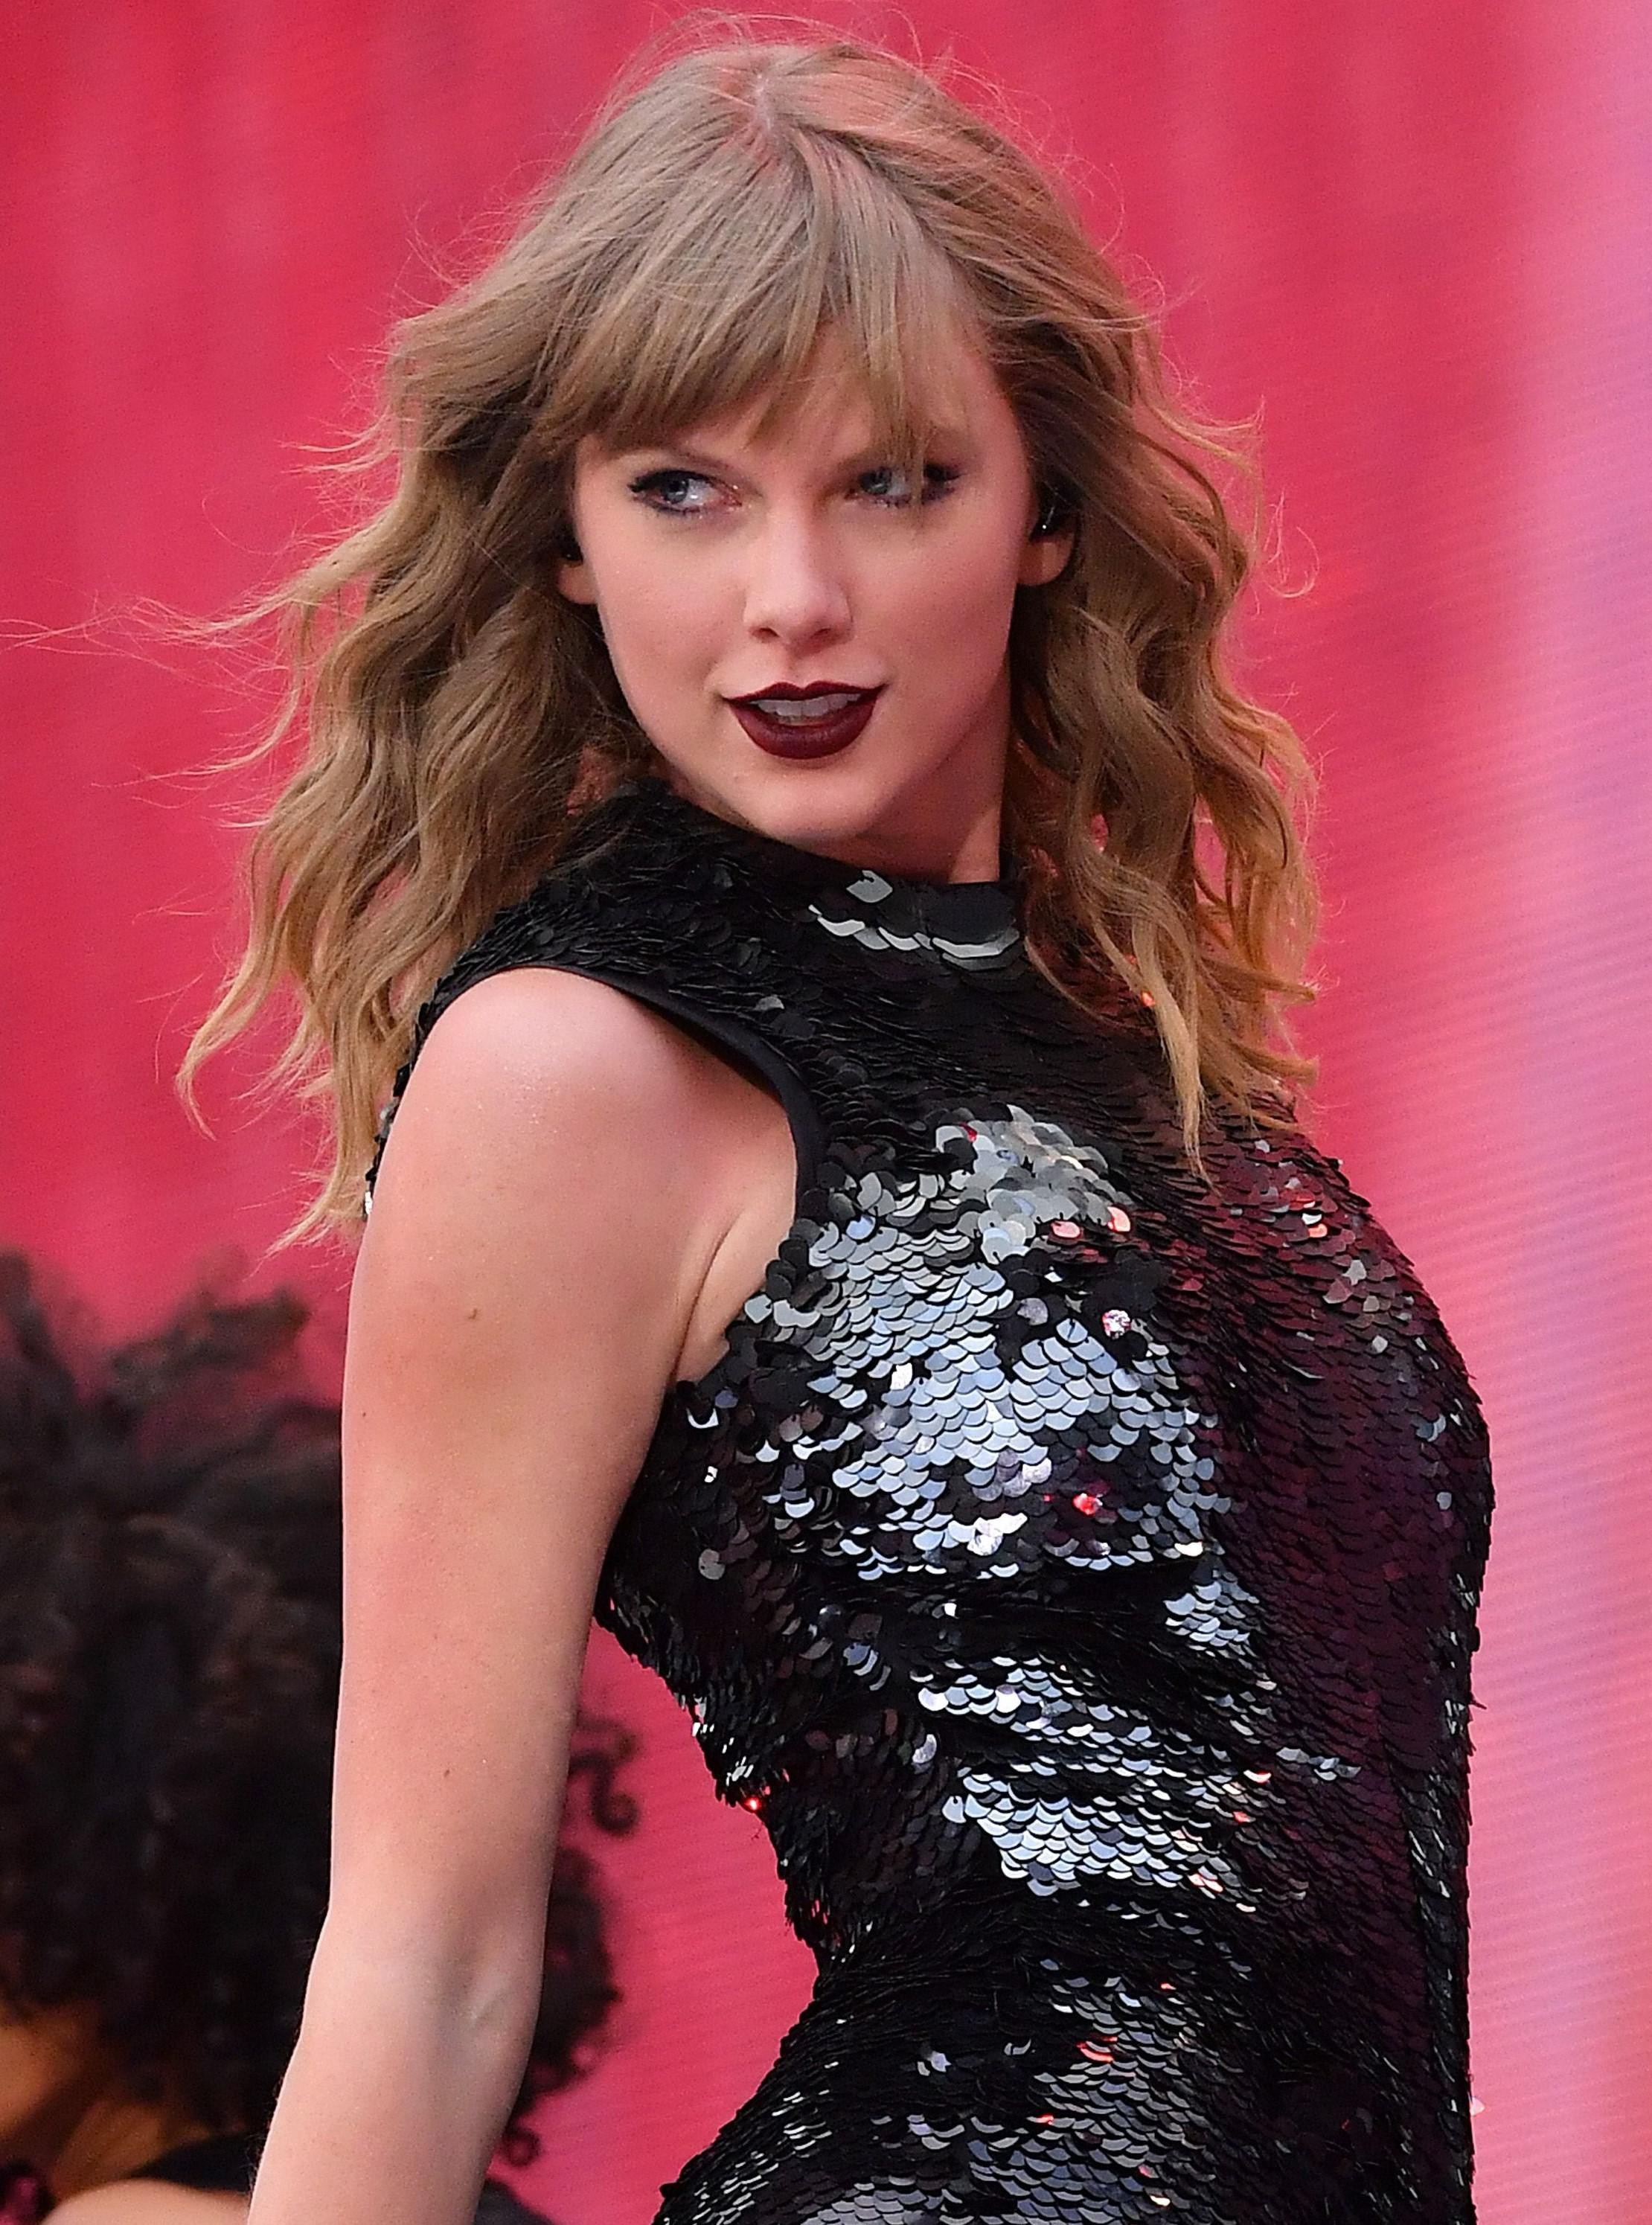 Wine Colored Taylor Swift Gorgeous Taylor Swift Instagram Celebs Instagram Cute Celebrity Pics Gorgeous